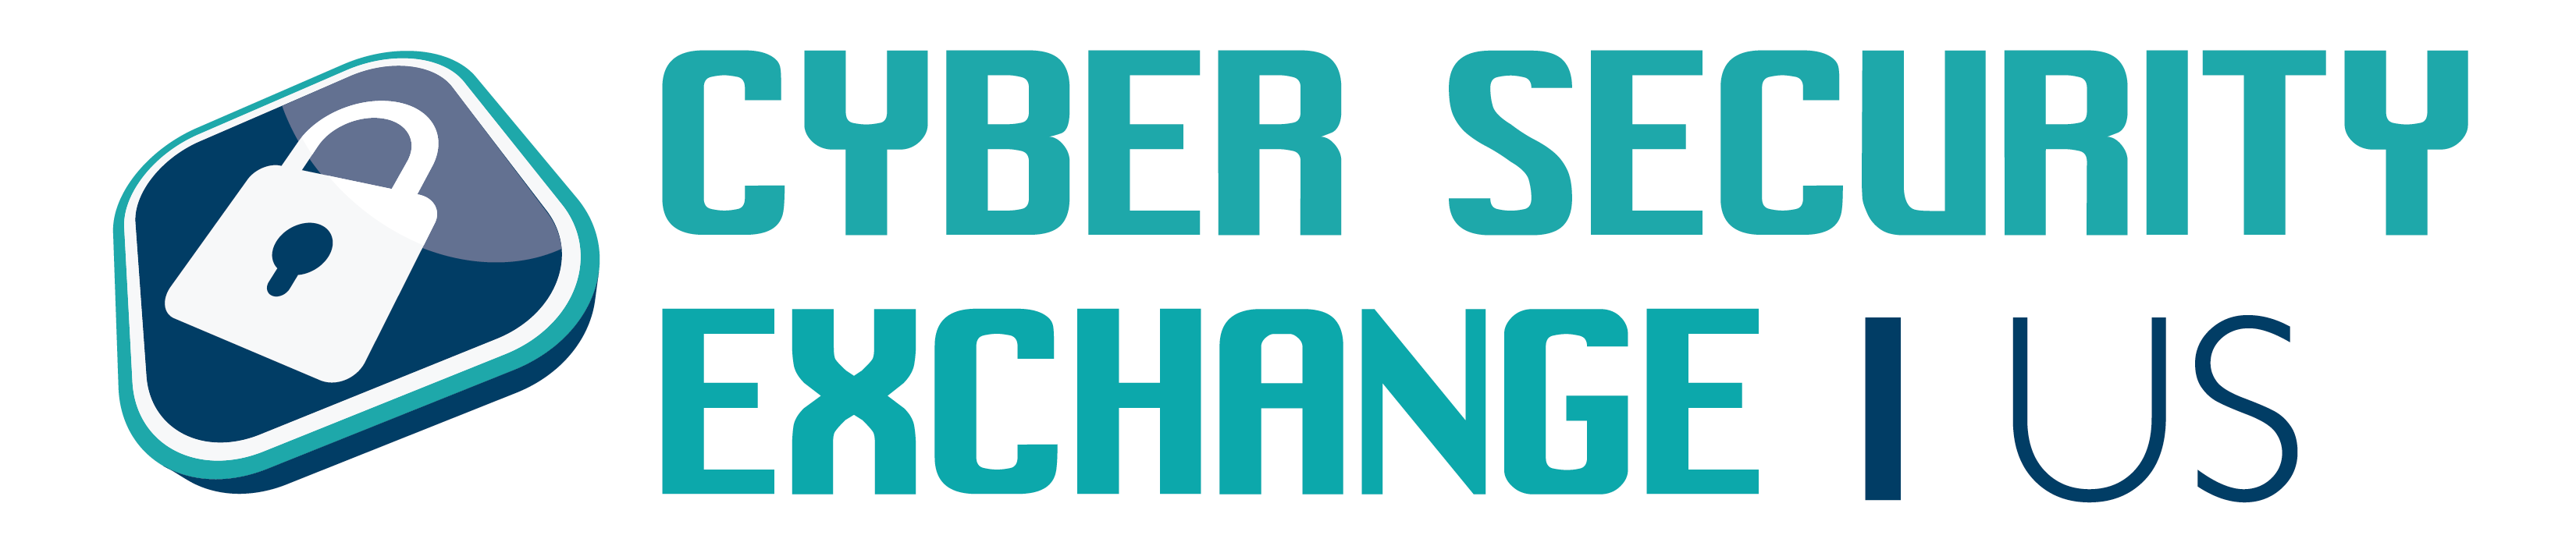 Leading Global, National Companies to Discuss Cybersecurity Solutions, Awareness and Preparedness at December Cyber Security Exchange in Florida [Press Release]